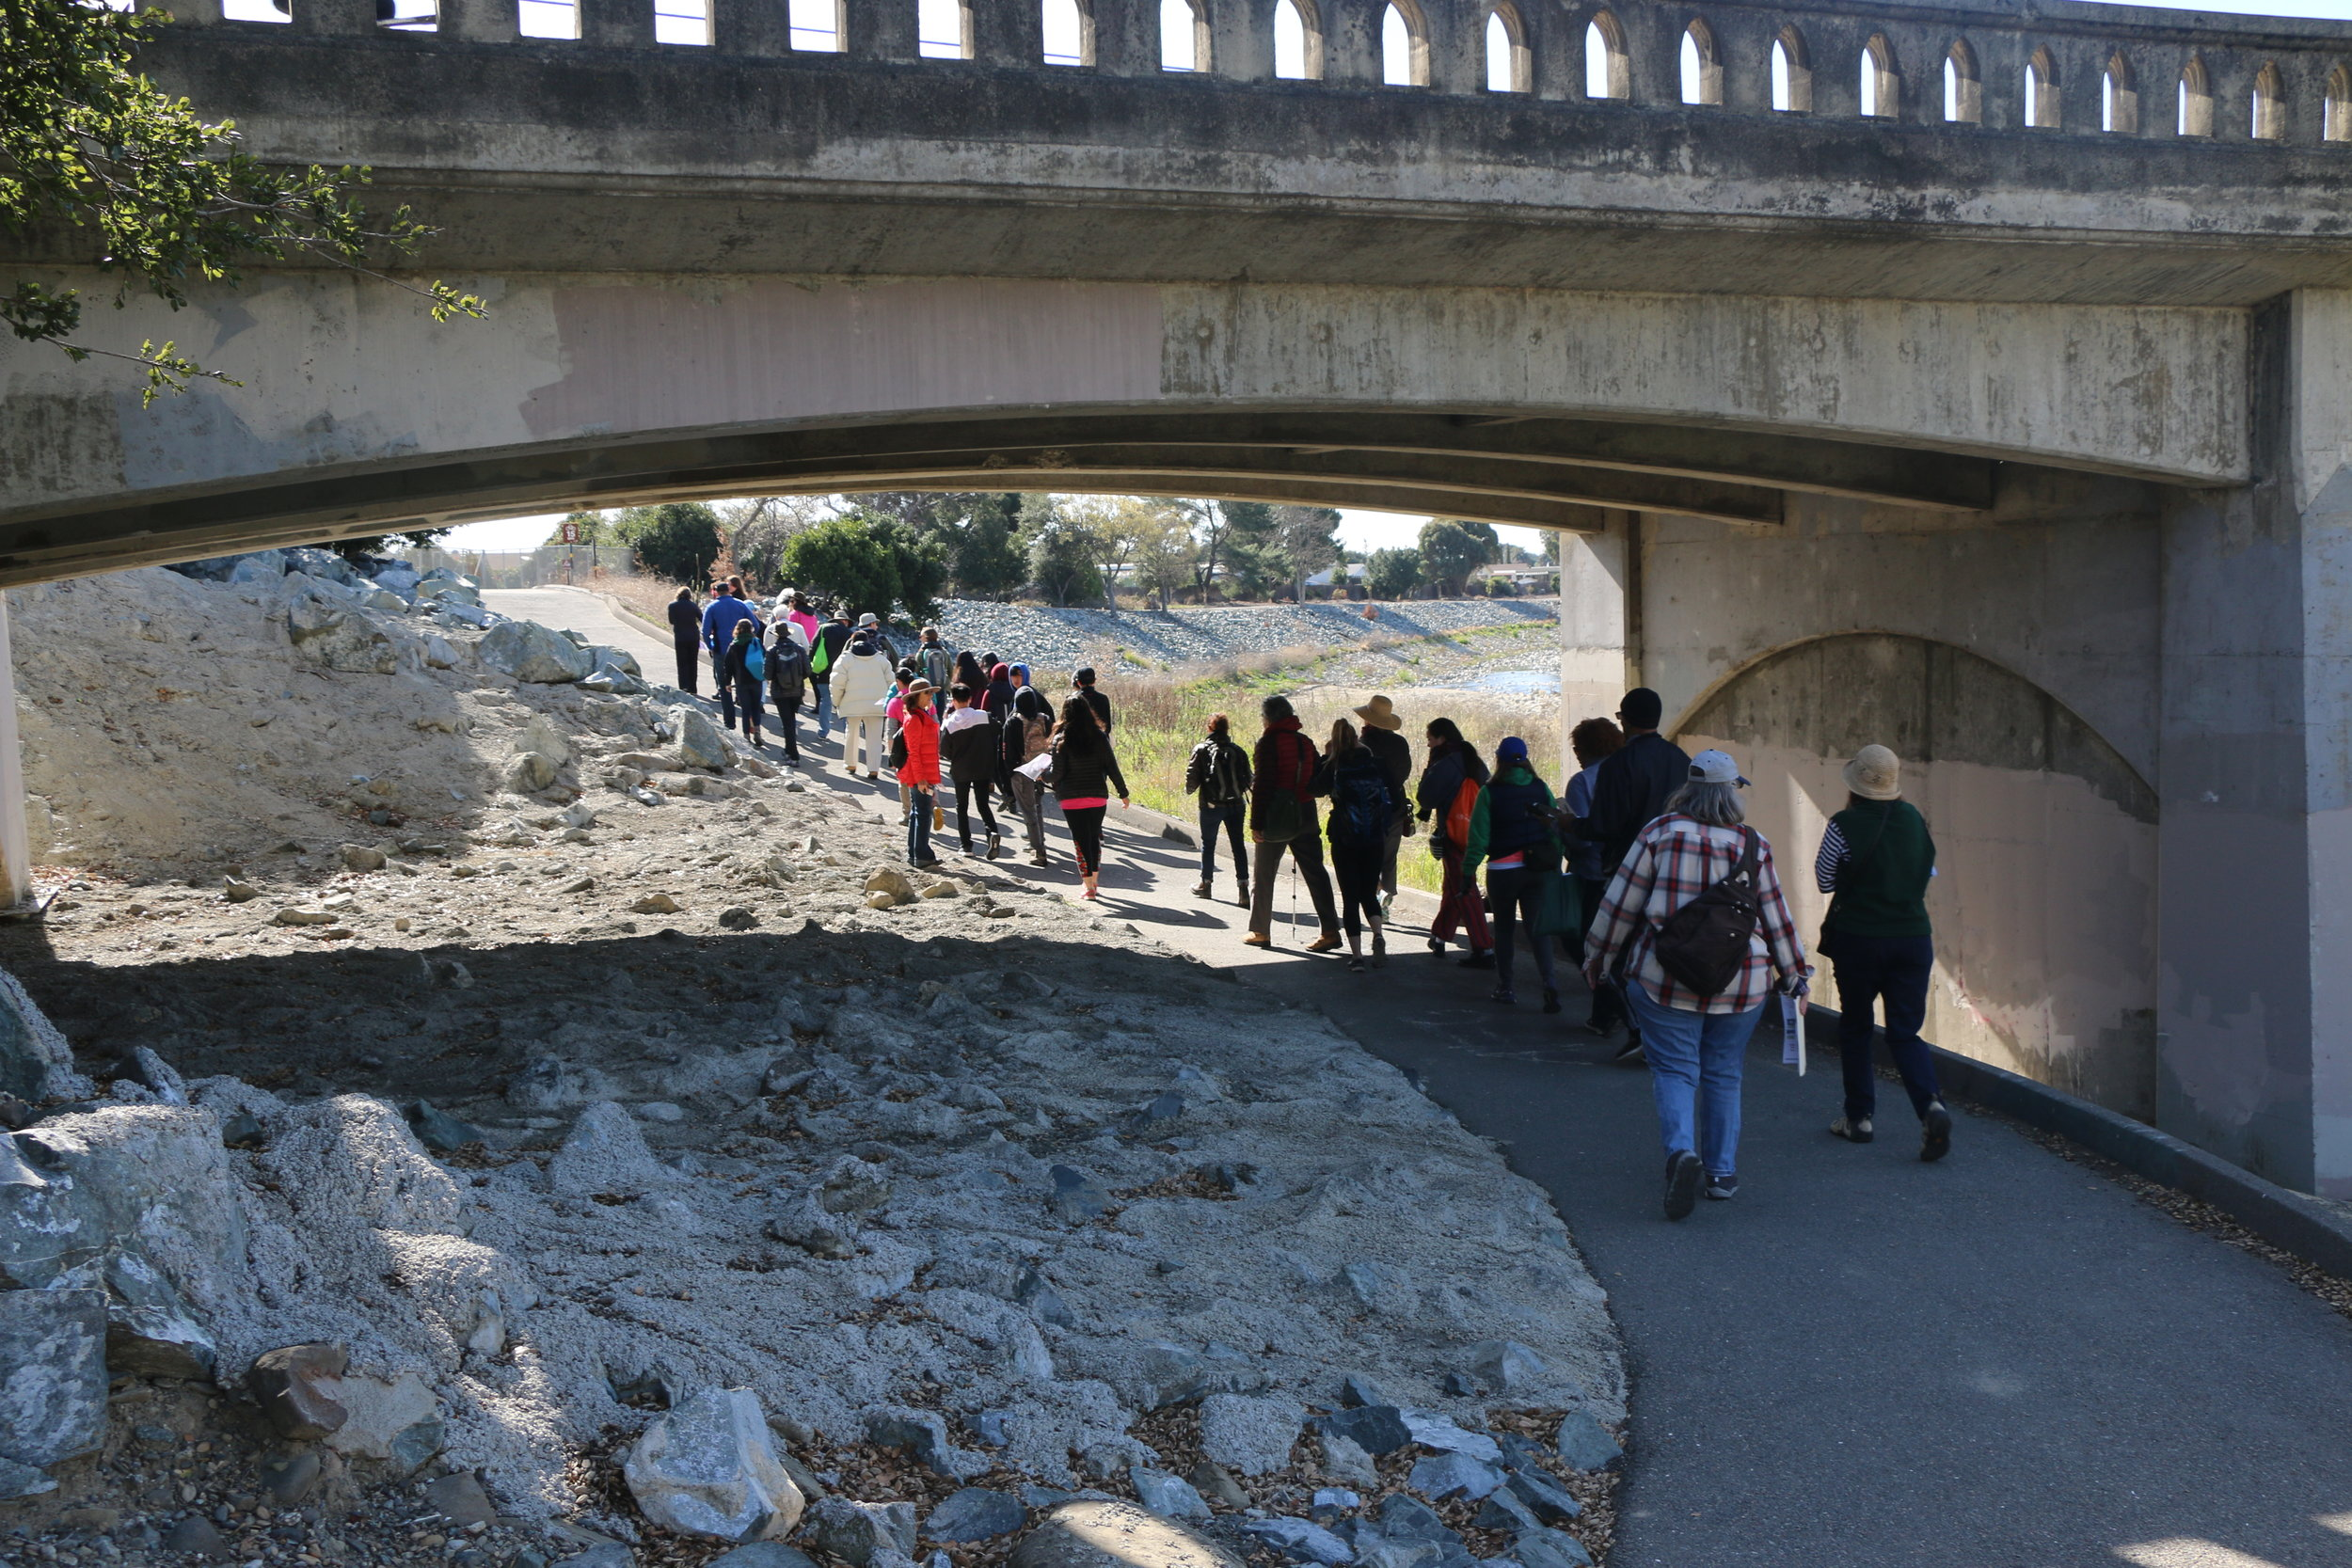 Creek Crawl passes underneath Old Canyon Road on the south side of the Alameda Creek Trail.